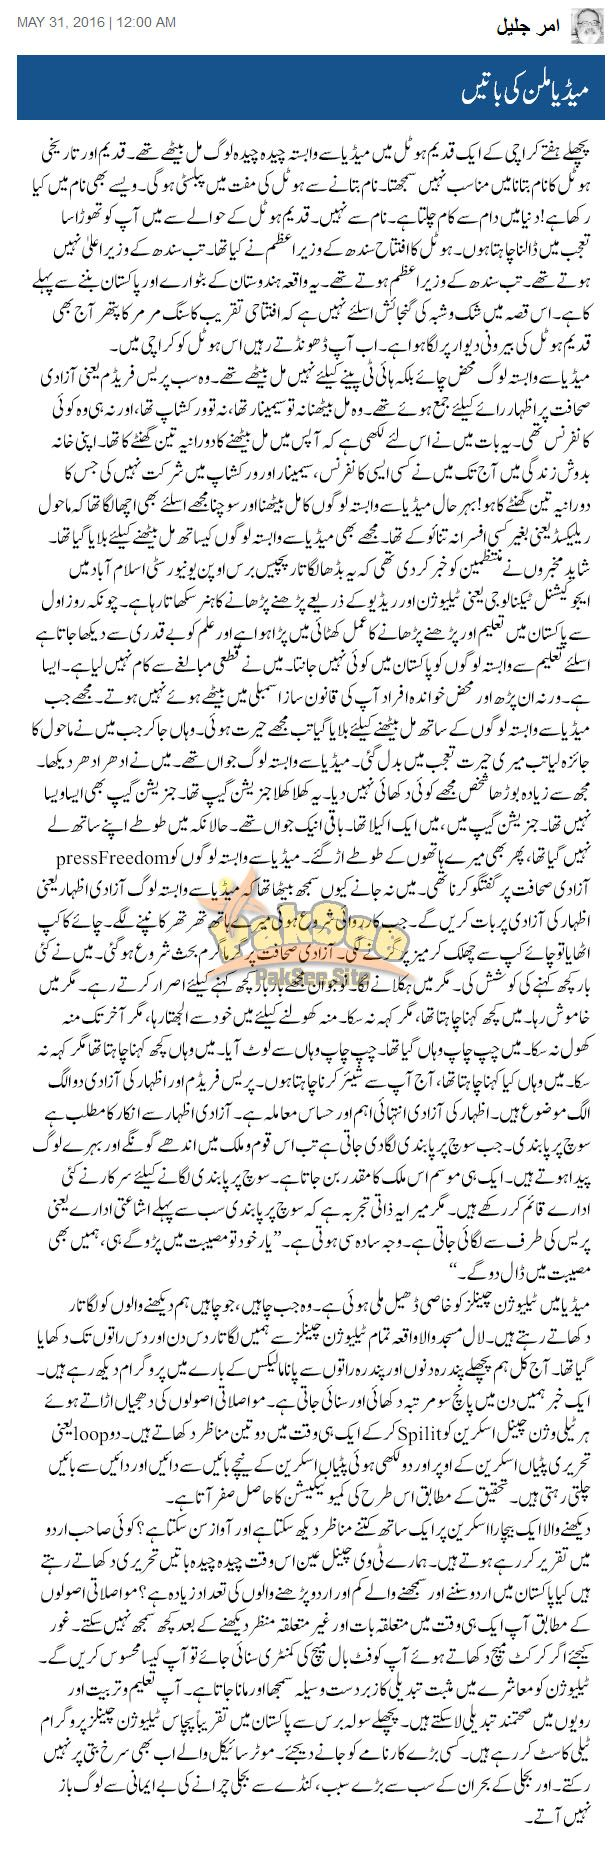 Amar Jalil column, 31May2016 sab jhoot, Media Milan Ki